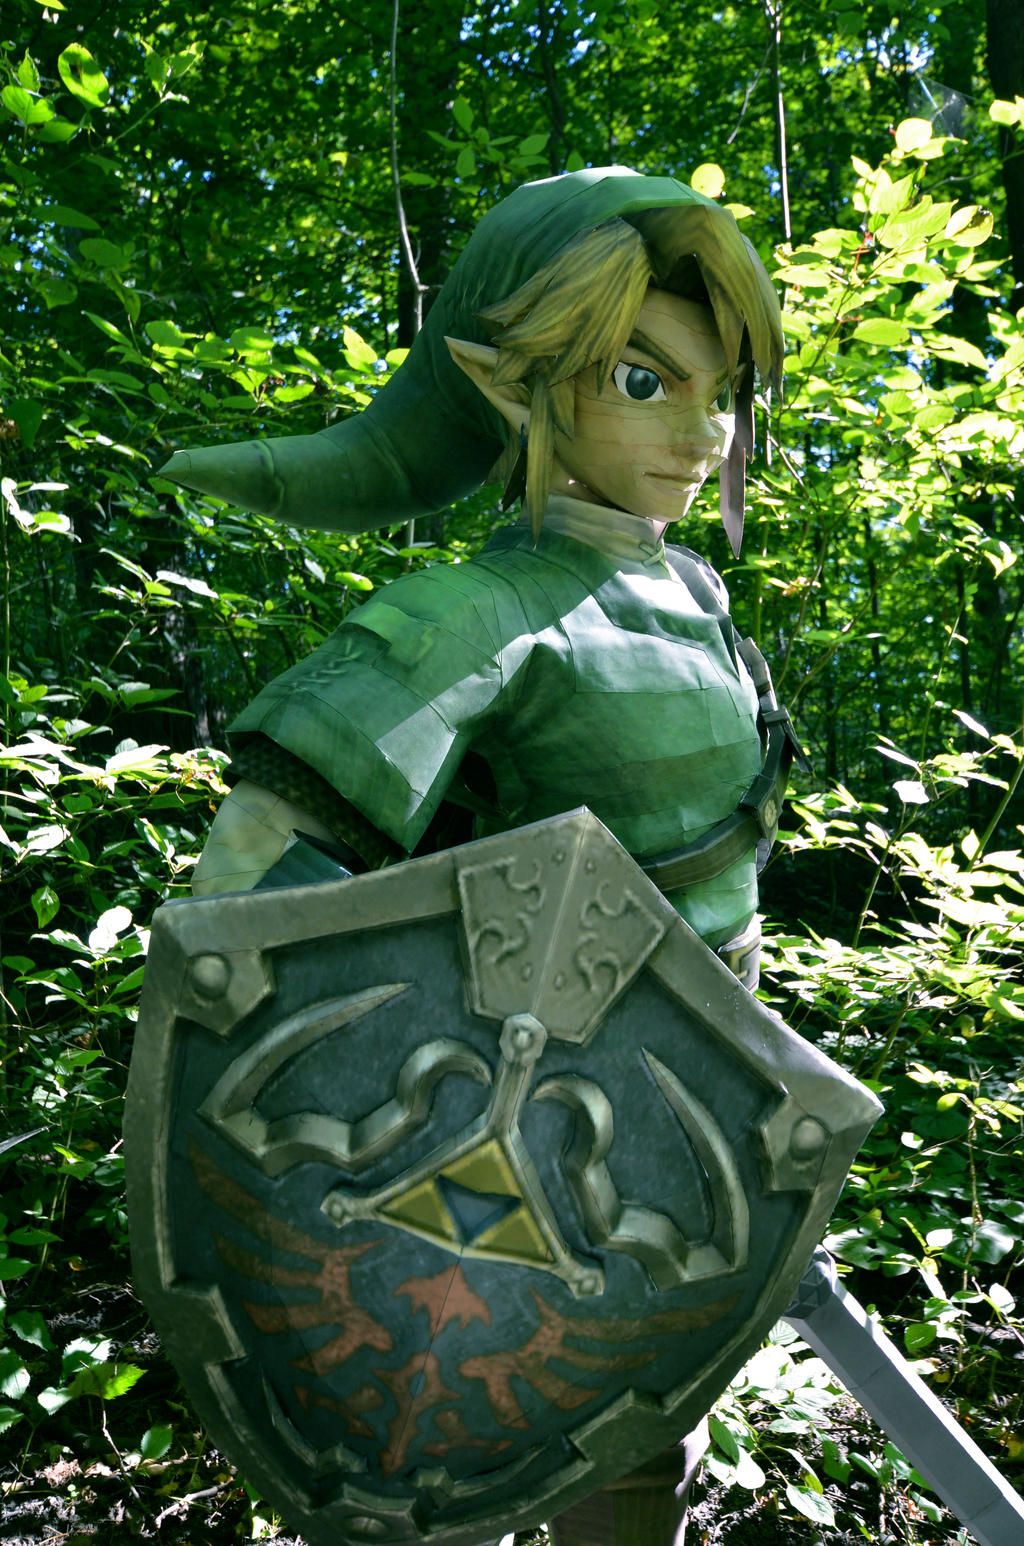 The Hylian Shield by studioofmm